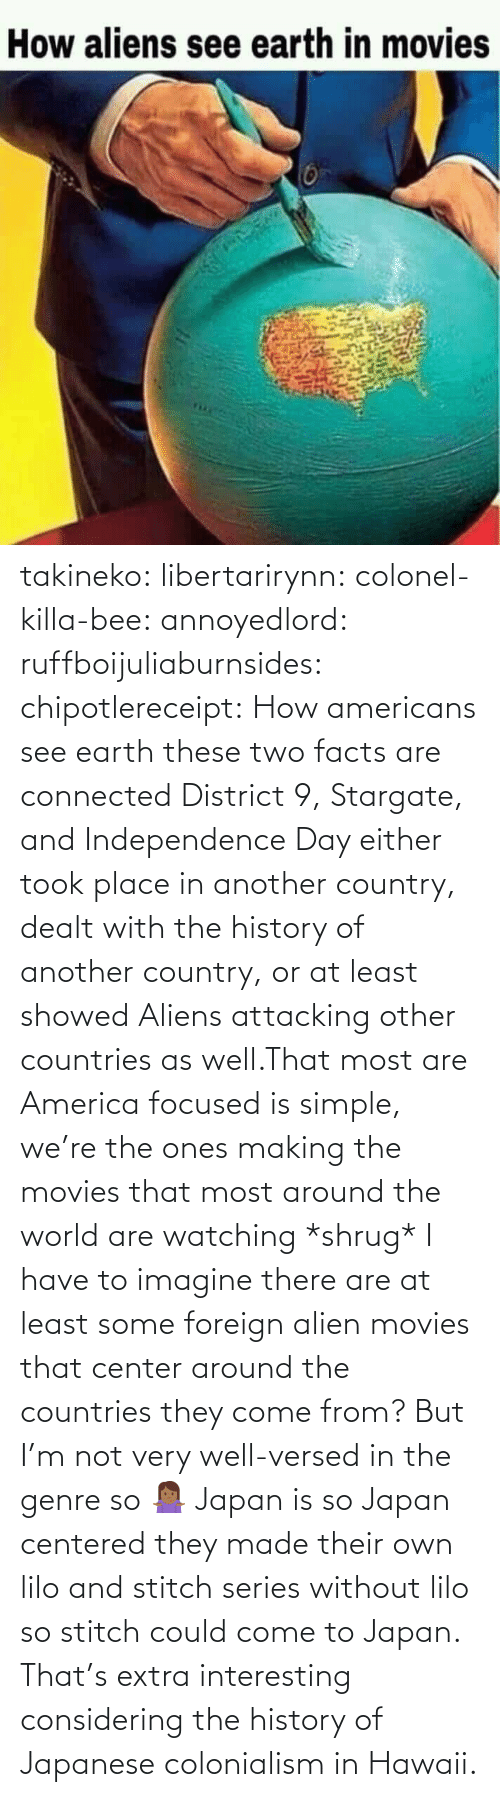 Come To: takineko:  libertarirynn:  colonel-killa-bee:  annoyedlord: ruffboijuliaburnsides:  chipotlereceipt: How americans see earth these two facts are connected     District 9, Stargate, and Independence Day either took place in another country, dealt with the history of another country, or at least showed Aliens attacking other countries as well.That most are America focused is simple, we're the ones making the movies that most around the world are watching *shrug*   I have to imagine there are at least some foreign alien movies that center around the countries they come from? But I'm not very well-versed in the genre so 🤷🏾‍♀️   Japan is so Japan centered they made their own lilo and stitch series without lilo so stitch could come to Japan.    That's extra interesting considering the history of Japanese colonialism in Hawaii.